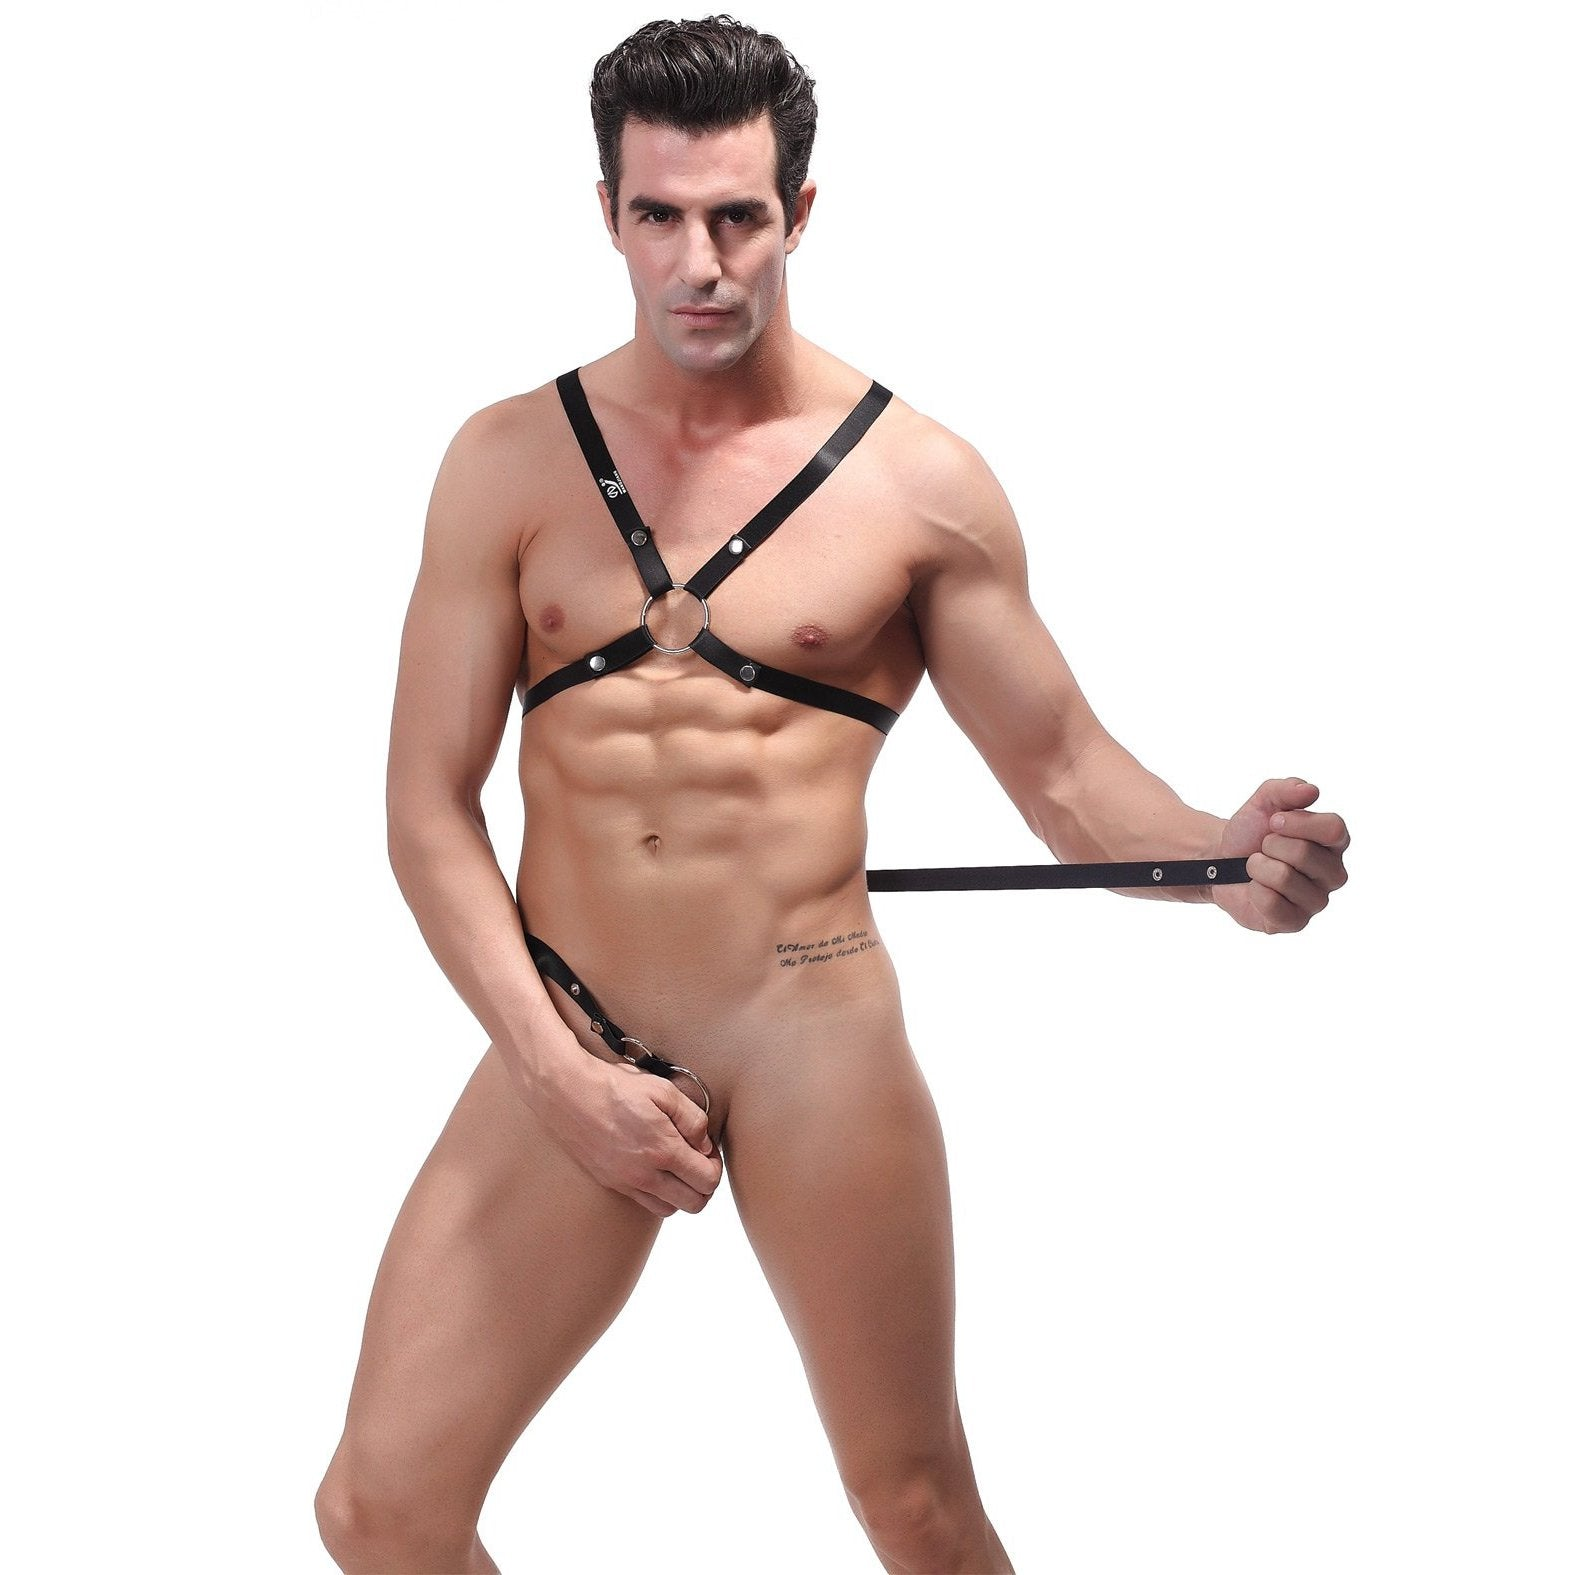 Rip off Harness Set Black O/S - Gay Men's Sex Toys - Adam's Toy Box